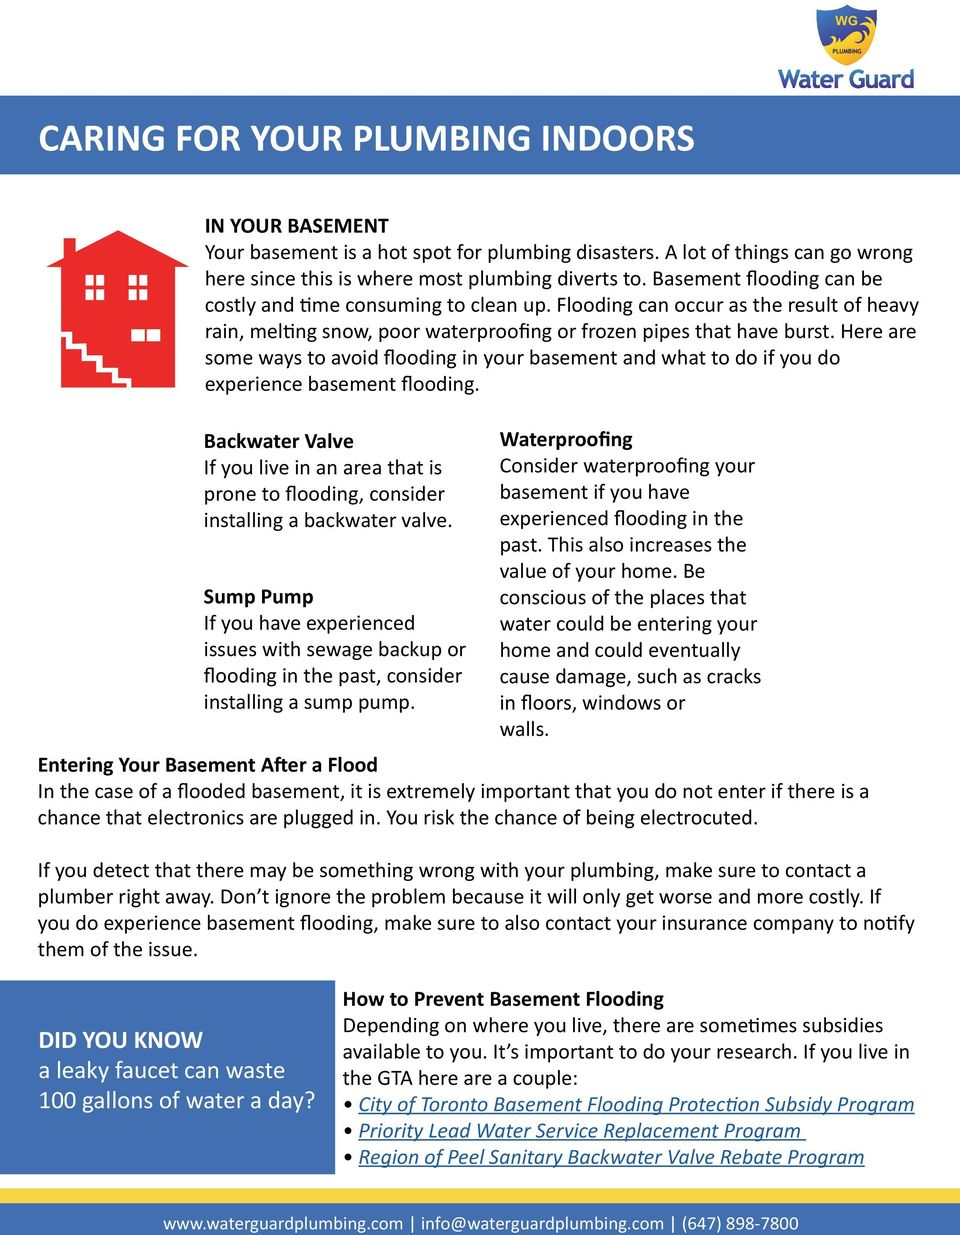 Here are some ways to avoid flooding in your basement and what to do if you do experience basement flooding.